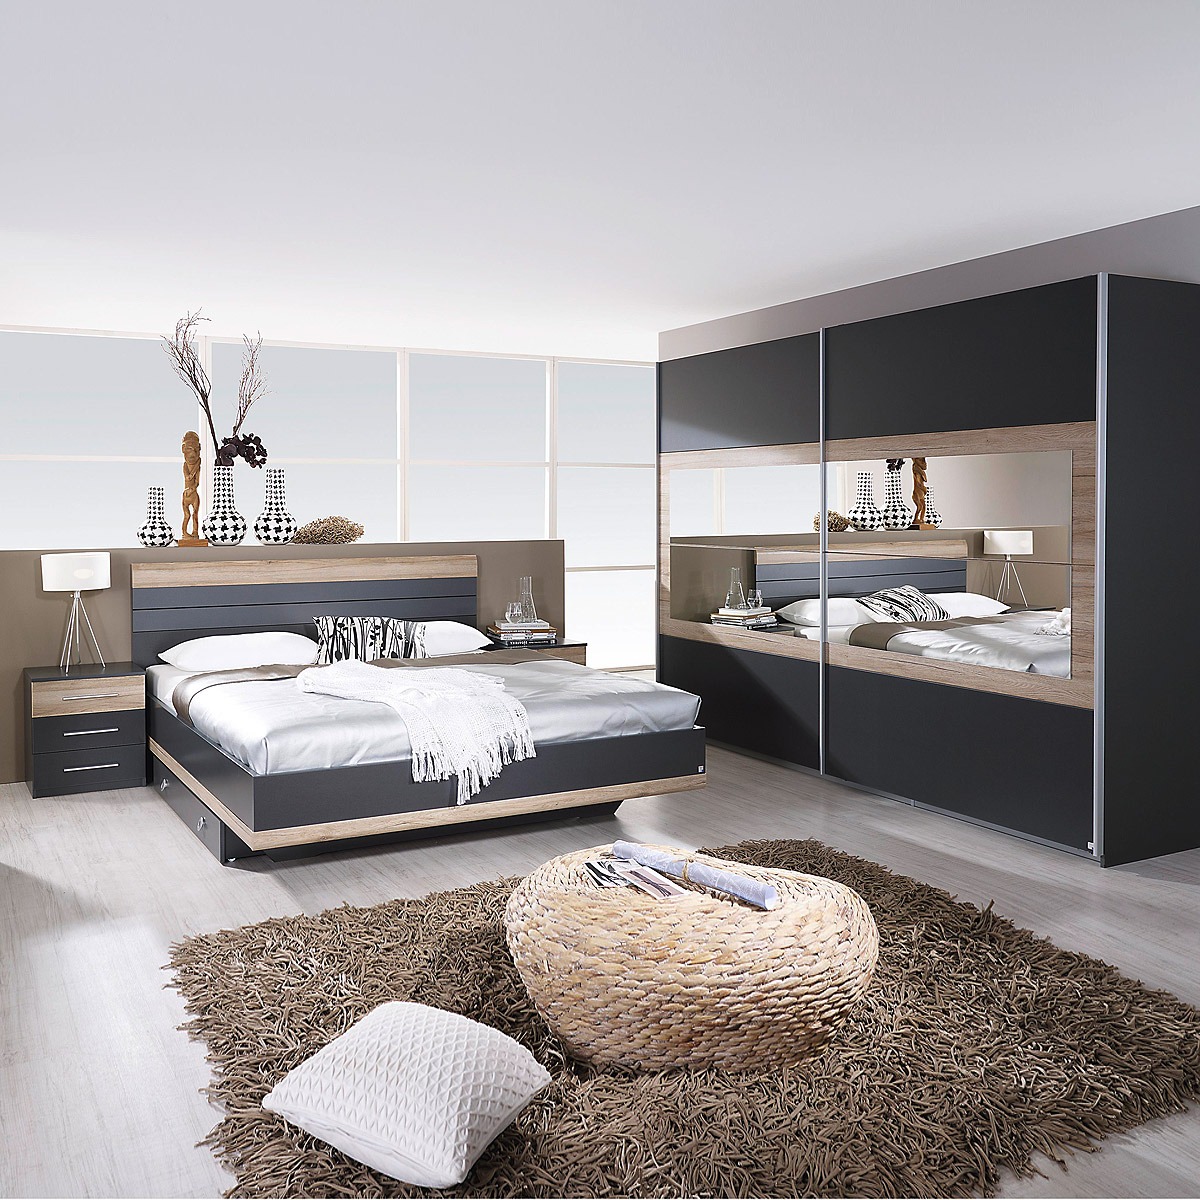 schlafzimmer set tarragona bett nakos kleiderschrank grau metallic eiche sanremo ebay. Black Bedroom Furniture Sets. Home Design Ideas